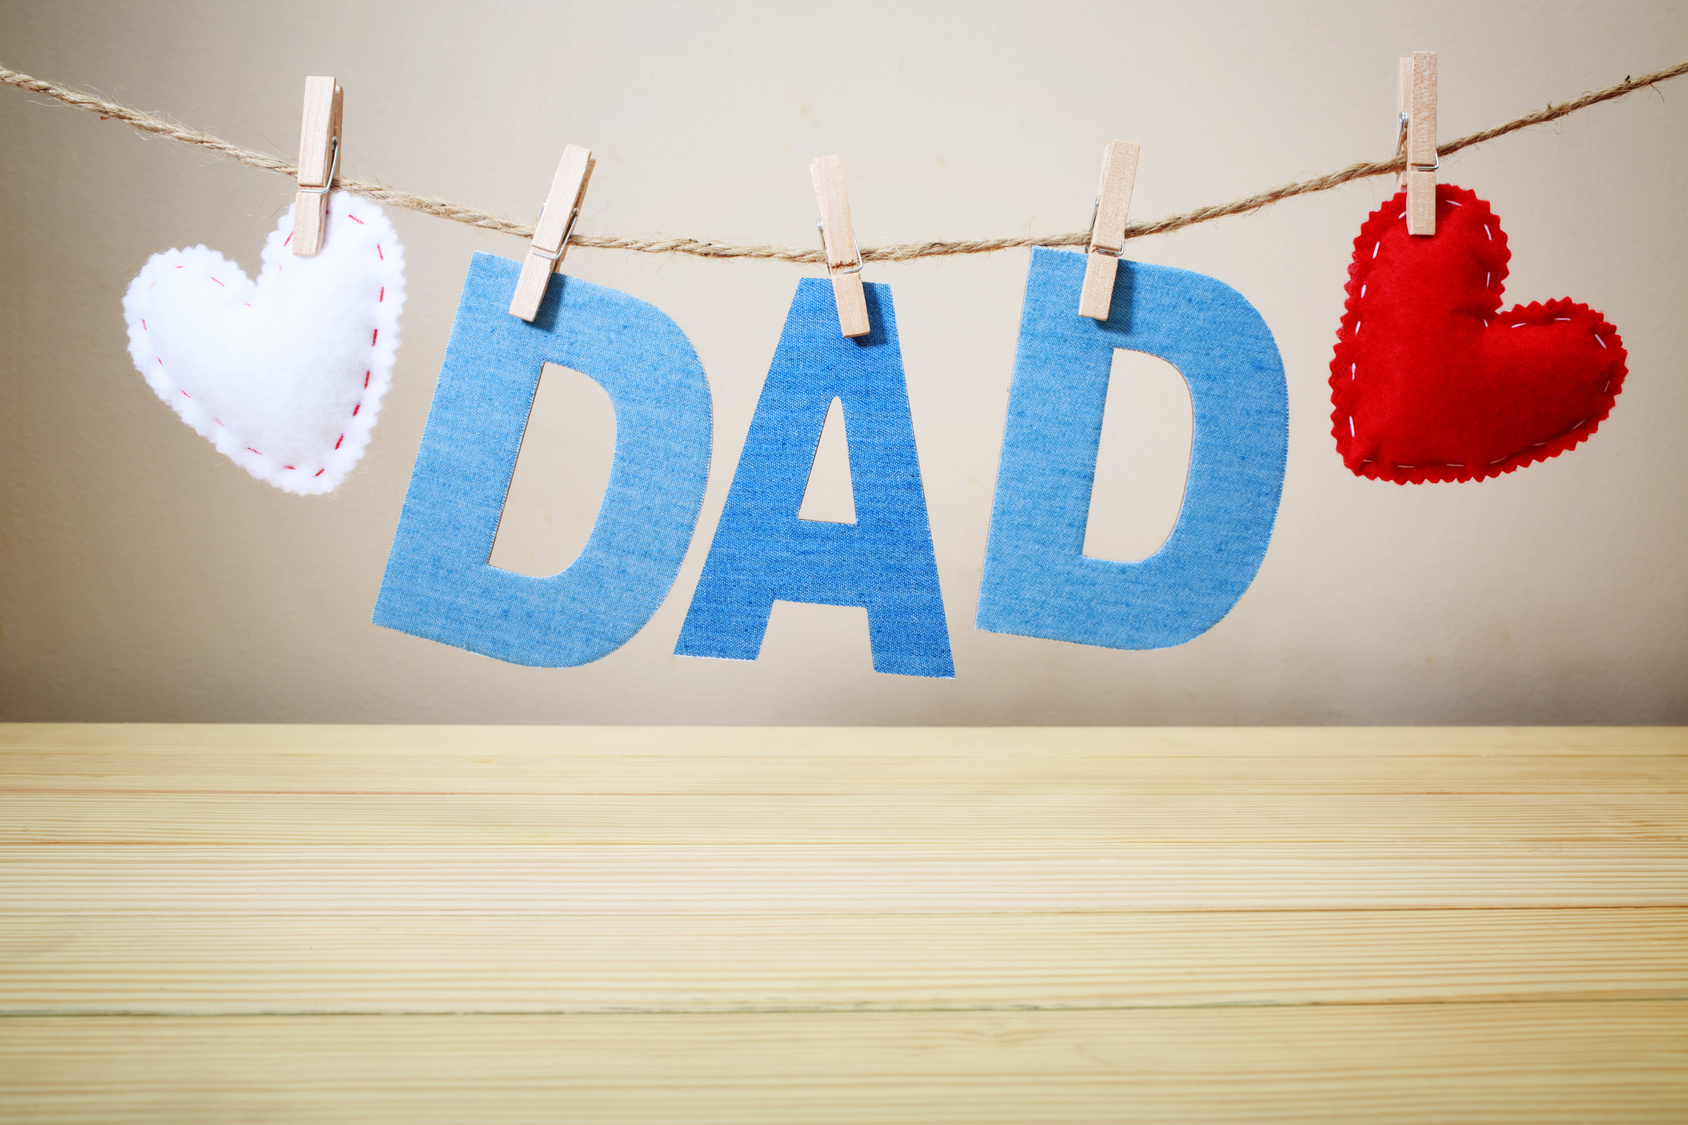 Father's Day Beaumont TX, Father's Day Southeast Texas, Father's Day SETX, Father's Day Port Arthur, Father's Day Nederland TX, Father's Day Orange TX, Father's Day ideas Beaumont, Father's Day gift Beaumont TX